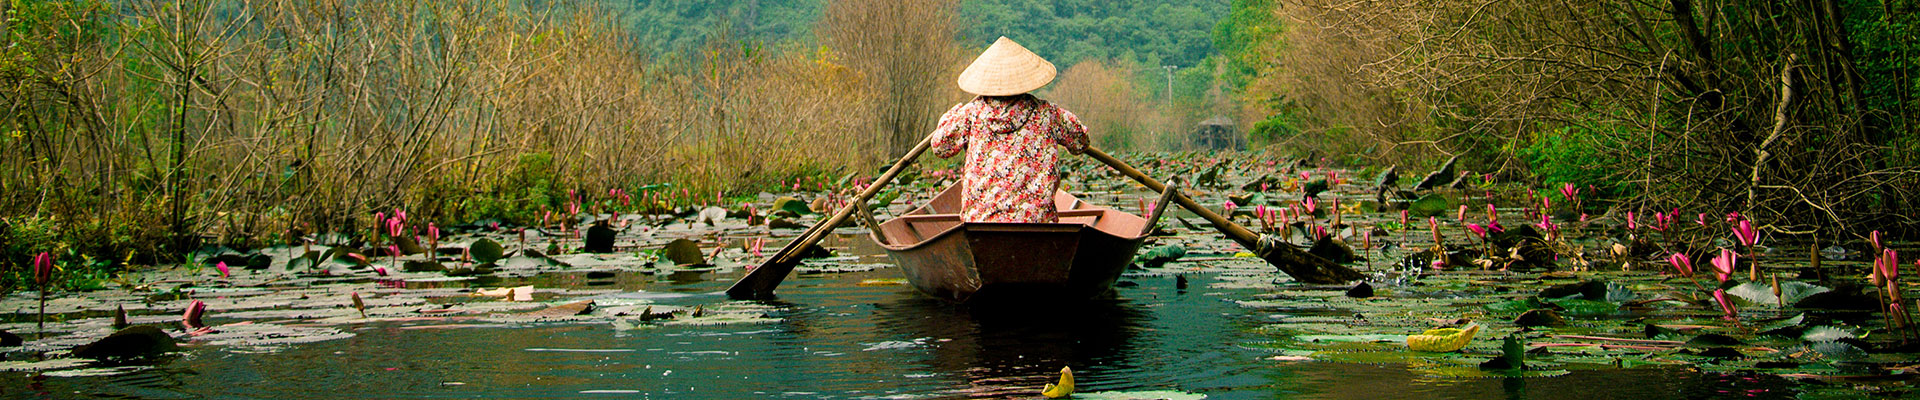 person in boat in vietnam